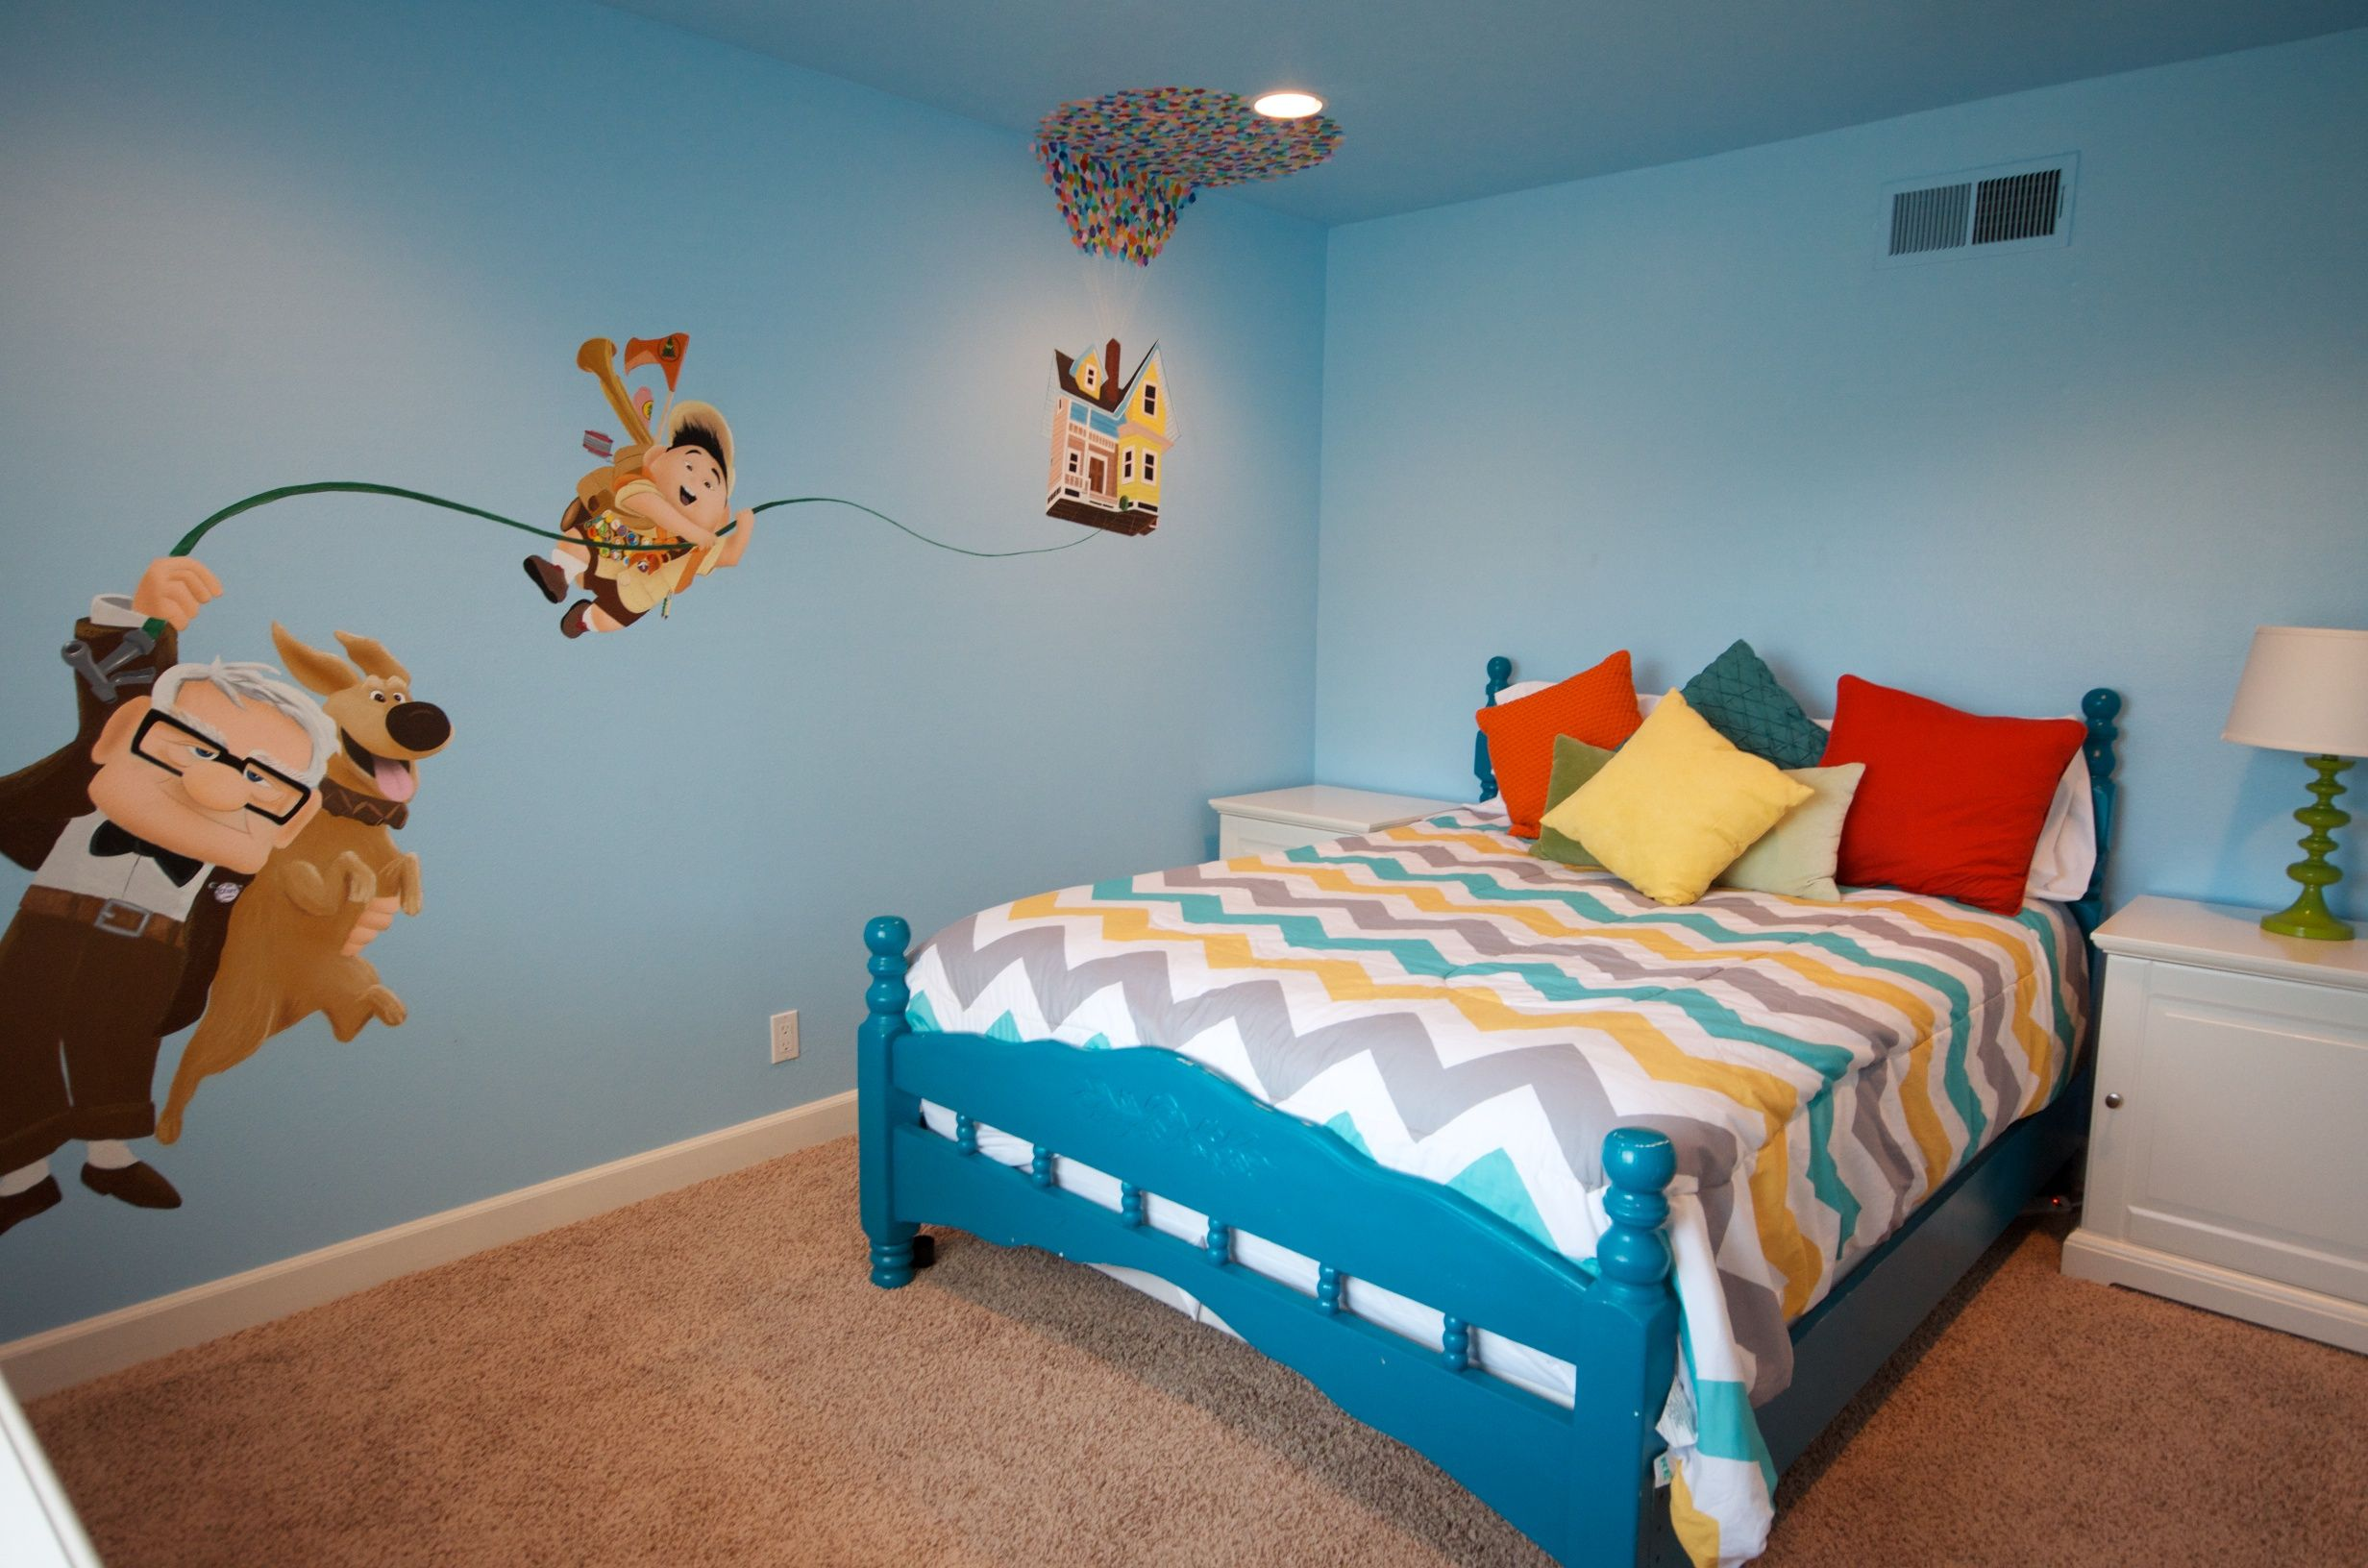 Disney Up Themed Room Bright And Cheery With An Amazing